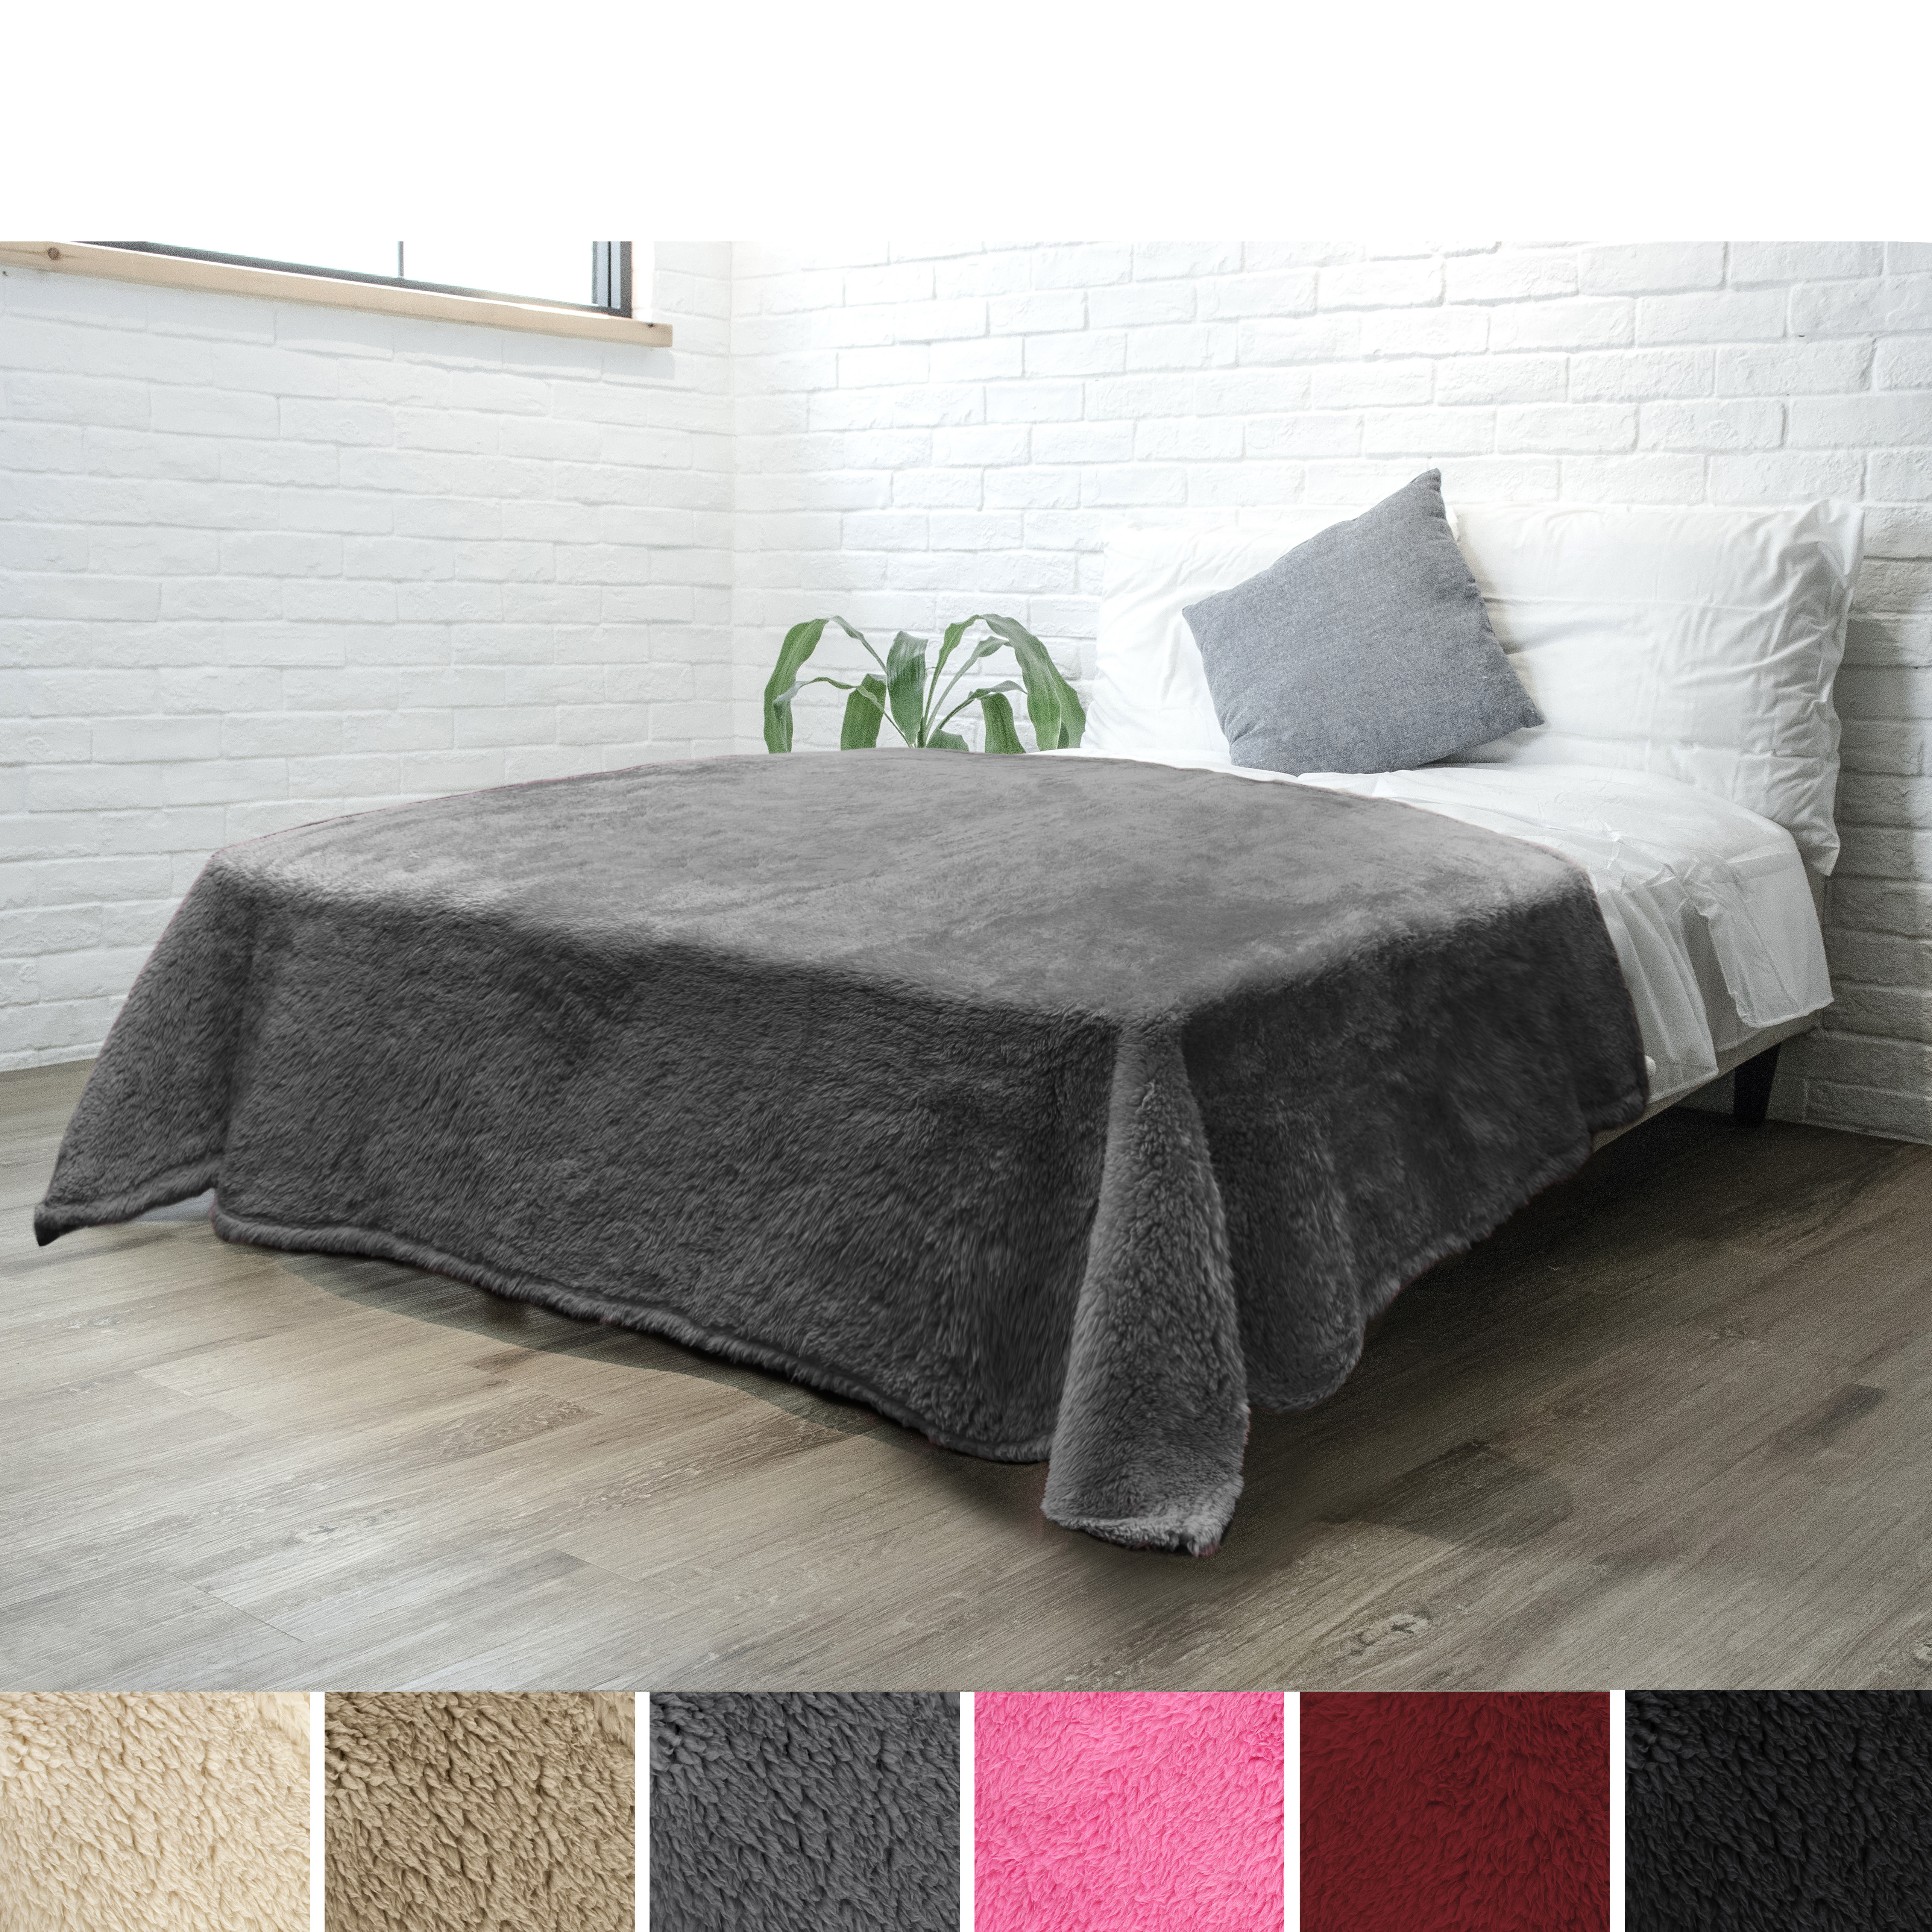 Soft-Fuzzy-Warm-Cozy-Throw-Blanket-with-Fluffy-Sherpa-Fleece-for-Sofa-Couch-Bed thumbnail 24